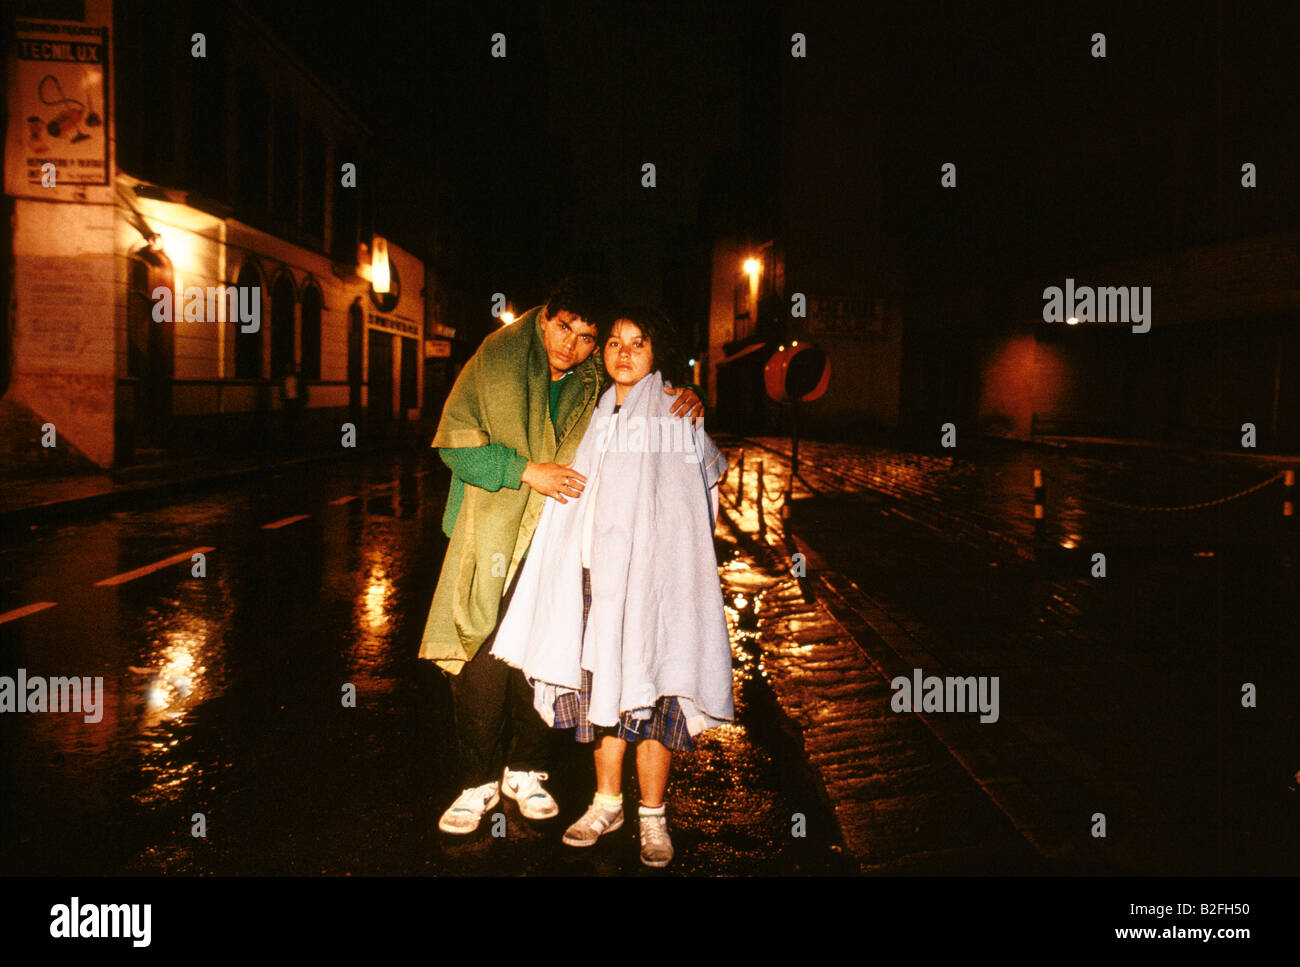 a teenage couple beg on the street at night - Stock Image